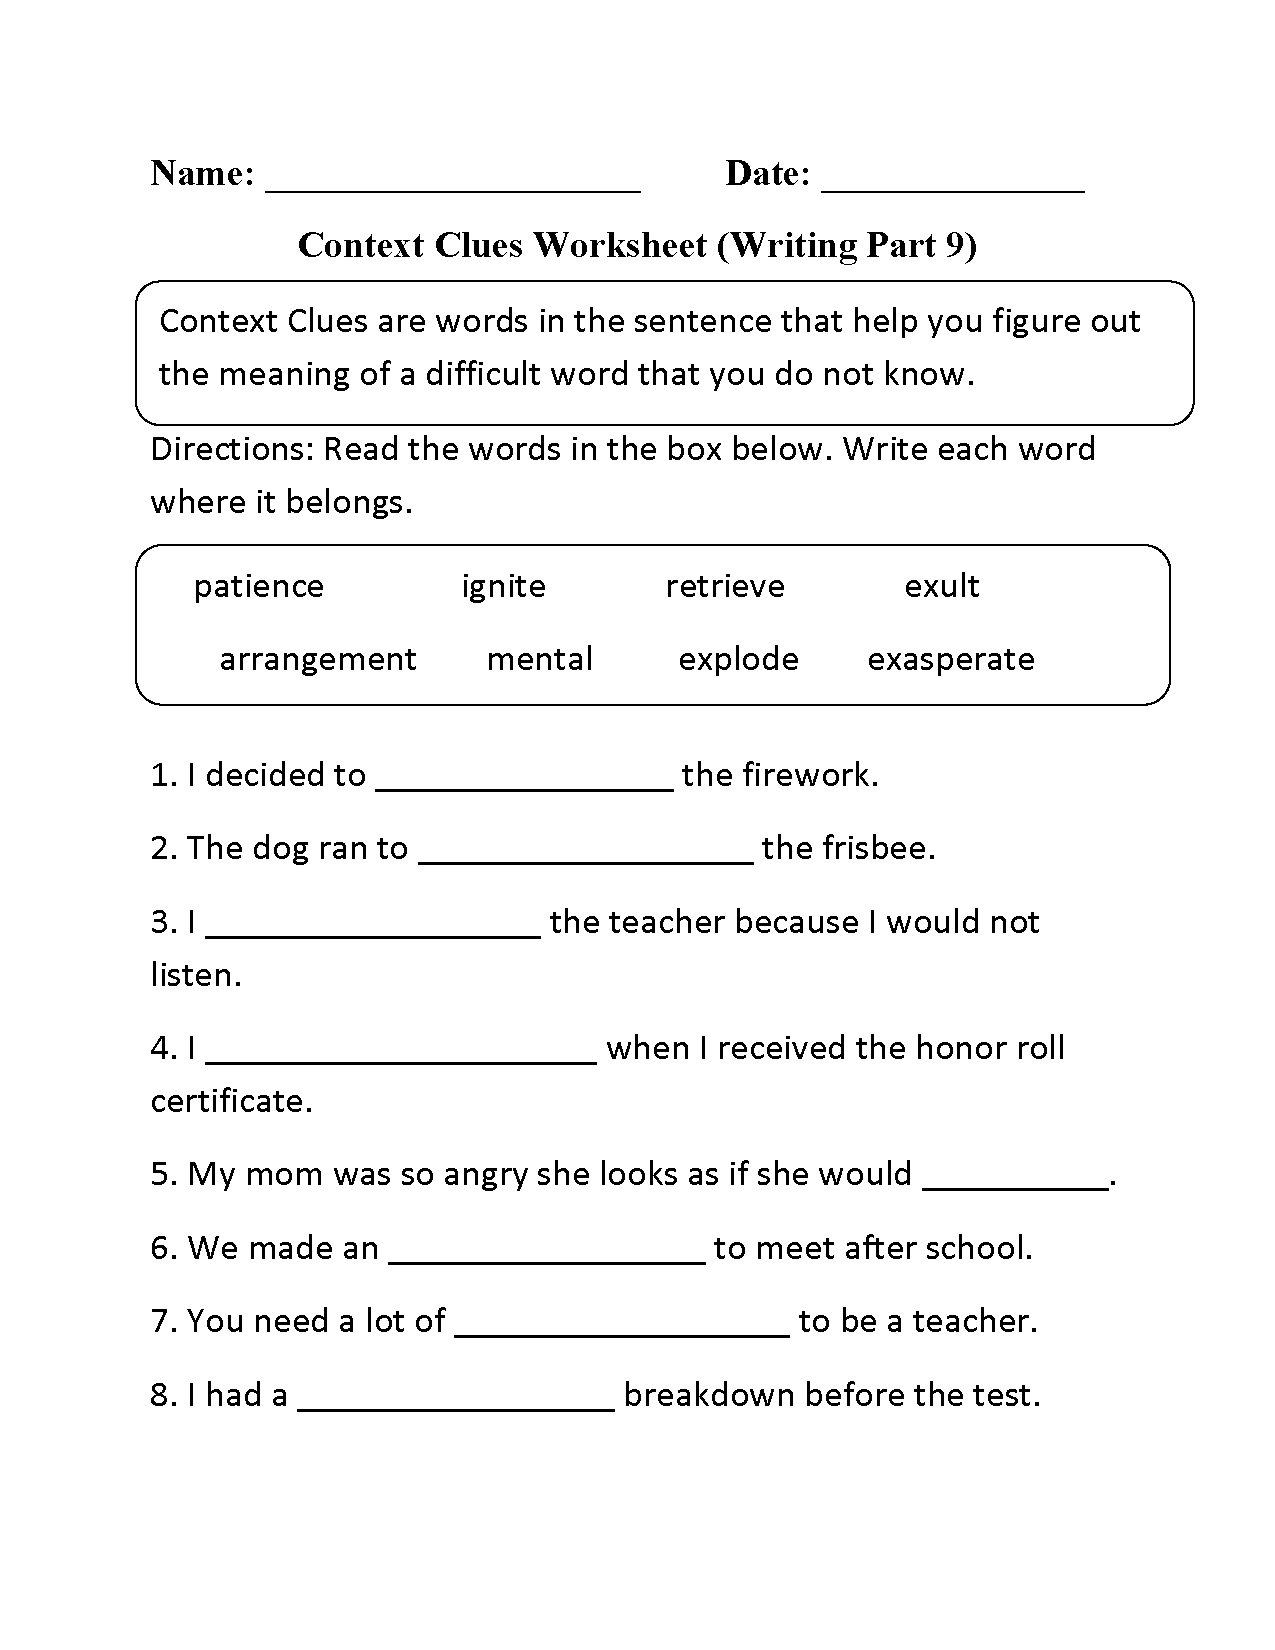 Context Clues Worksheet Writing Part 9 Intermediate | Context Clues | Context Clues Printable Worksheets 6Th Grade